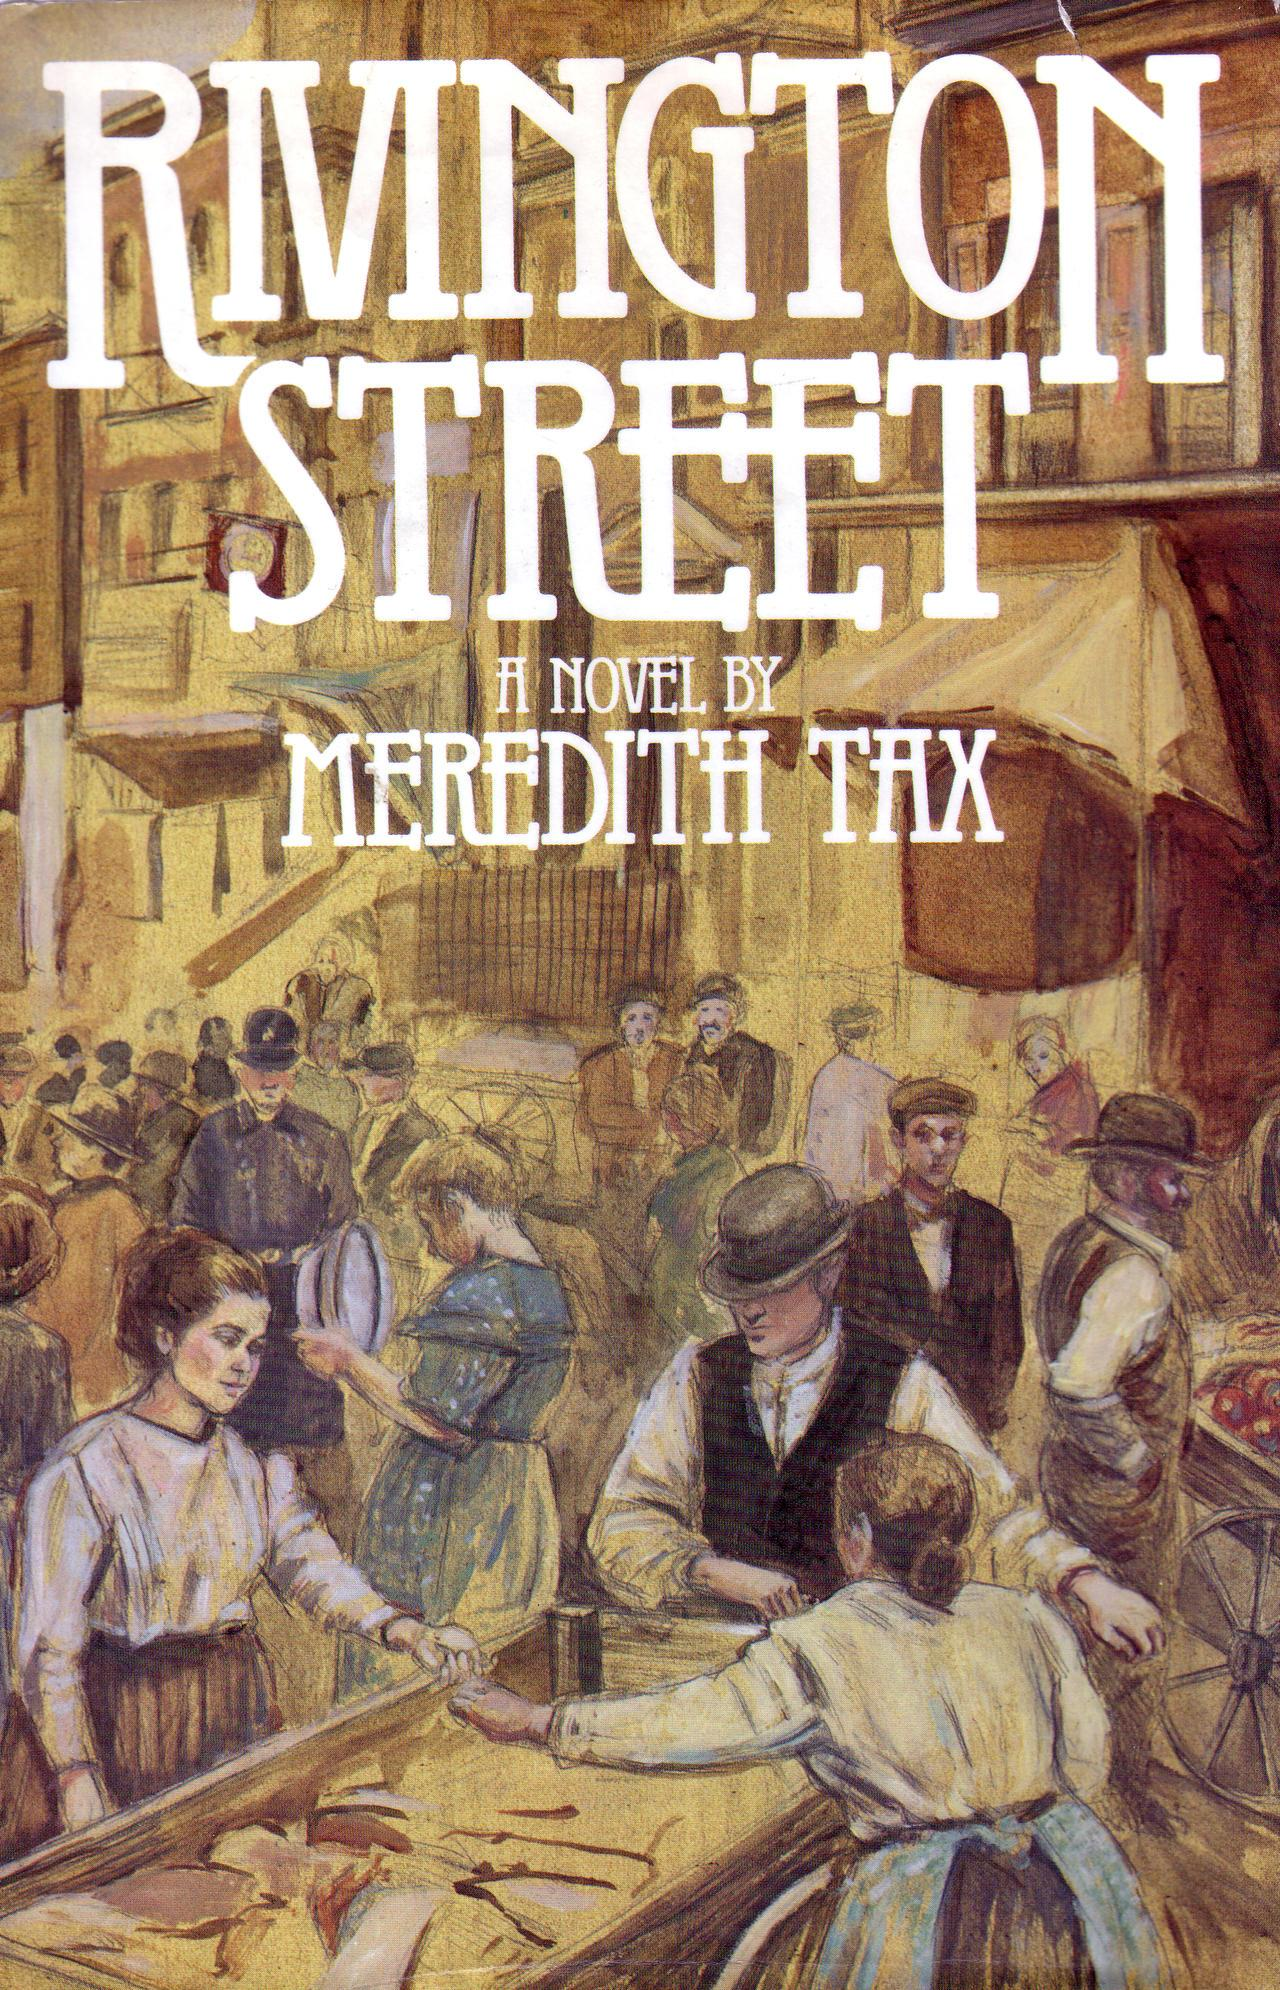 Rivington Street by Meredith Tax cover